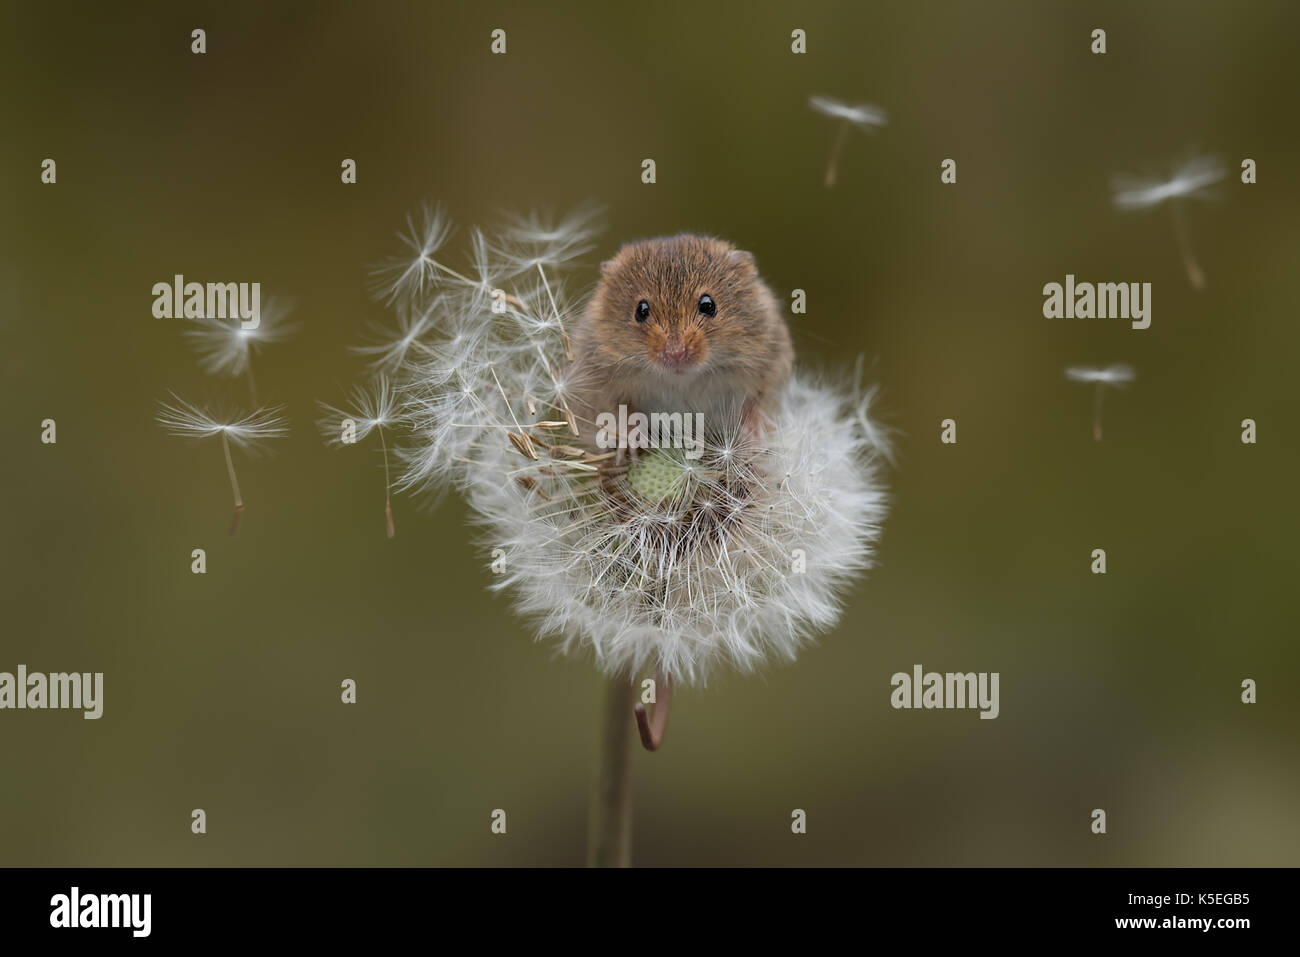 A harvest mouse balances precariously on a dandelion clock with the seeds blowing in the wind - Stock Image